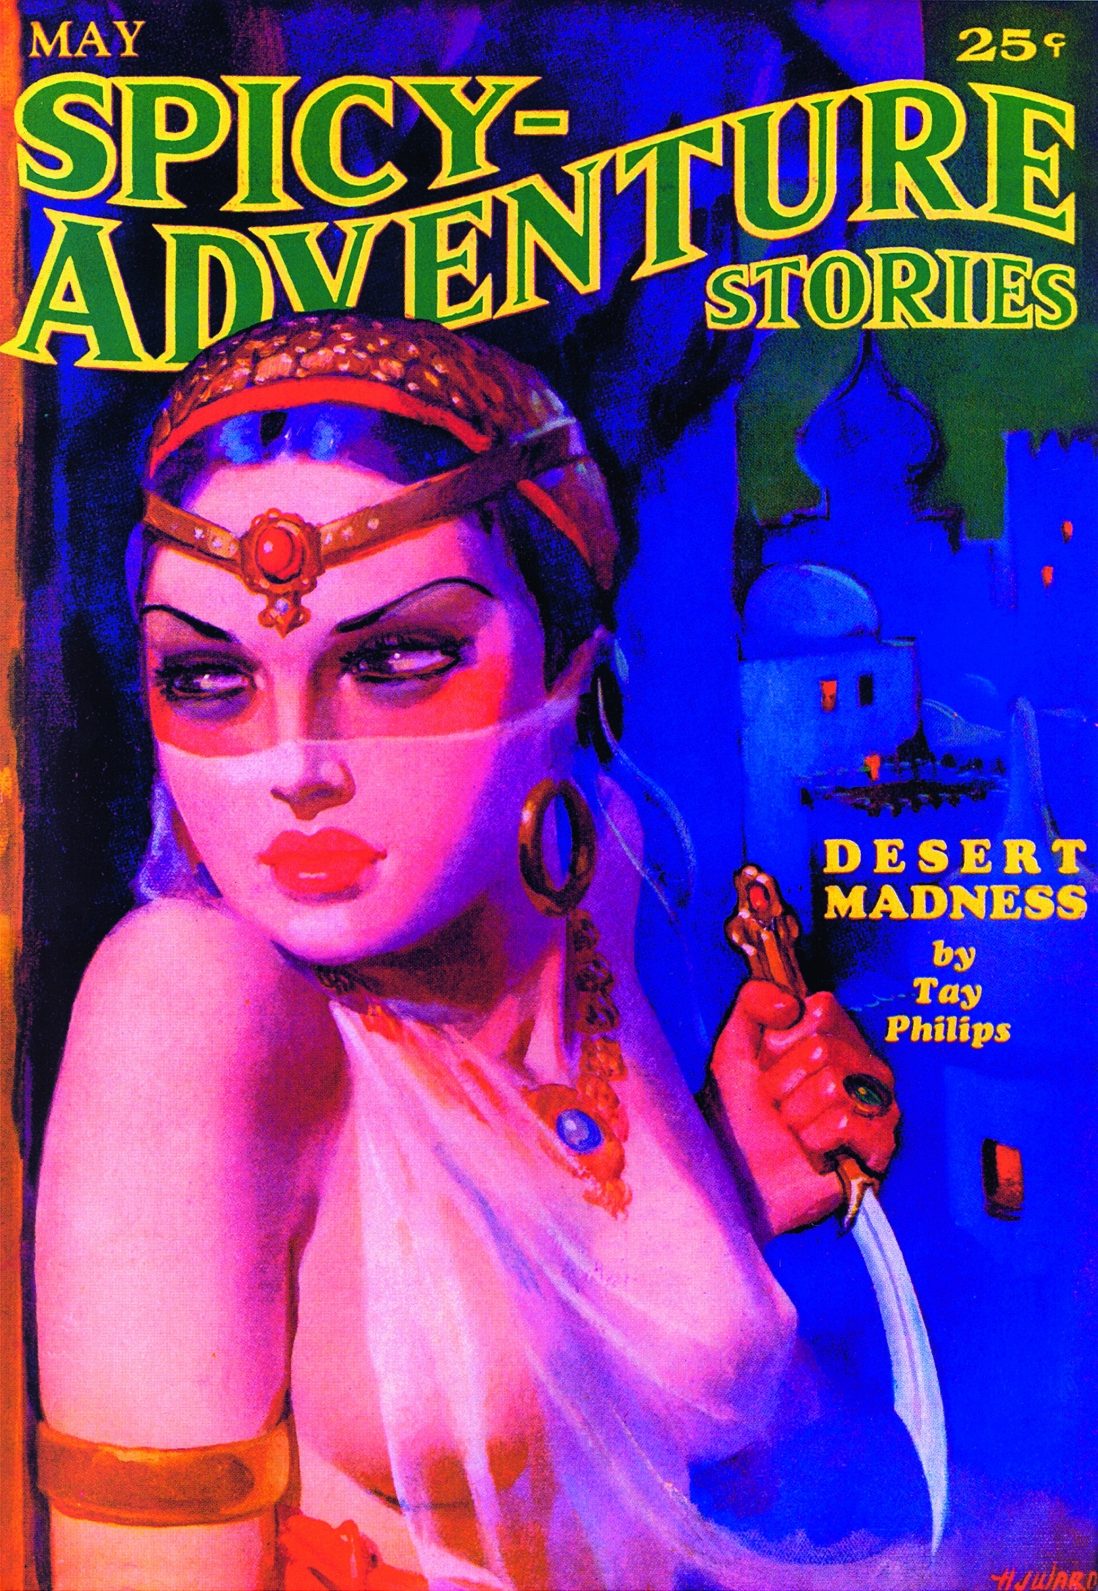 Illustrated book cover with exotic image of woman in Arabian style clothing holding a knife.